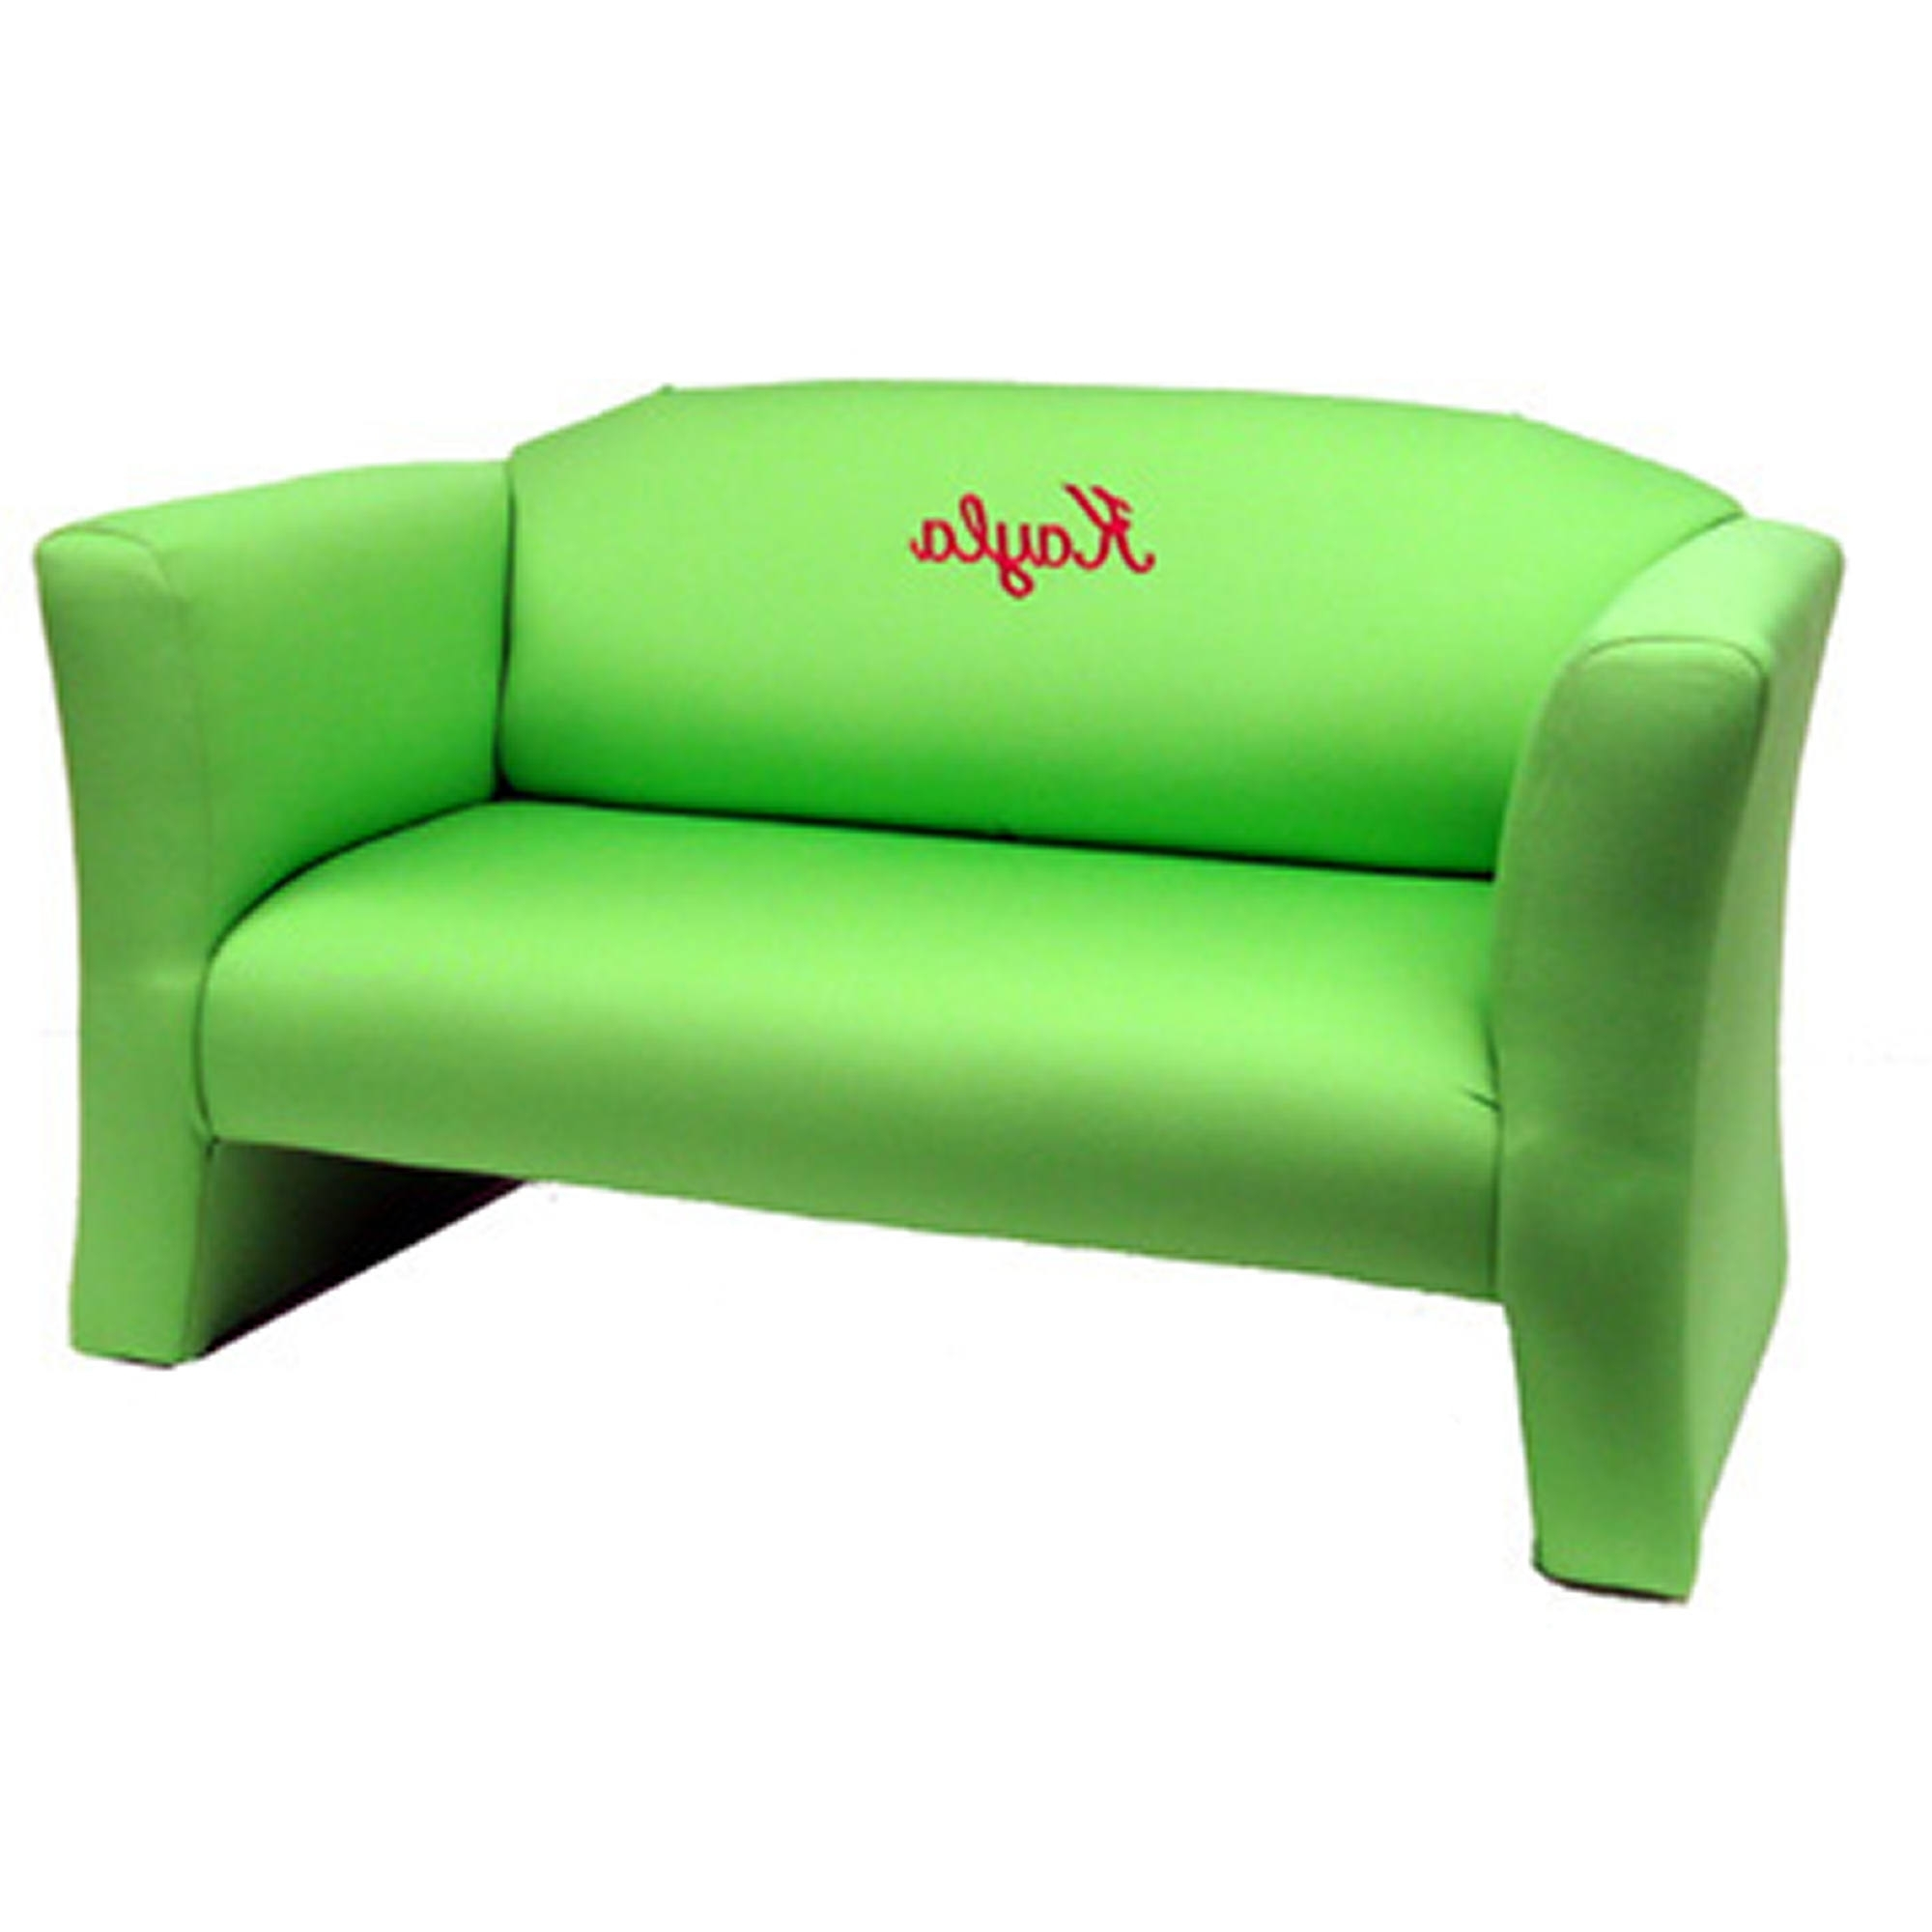 Kids Couches – Personalized Pertaining To Personalized Kids Chairs And Sofas (View 4 of 20)